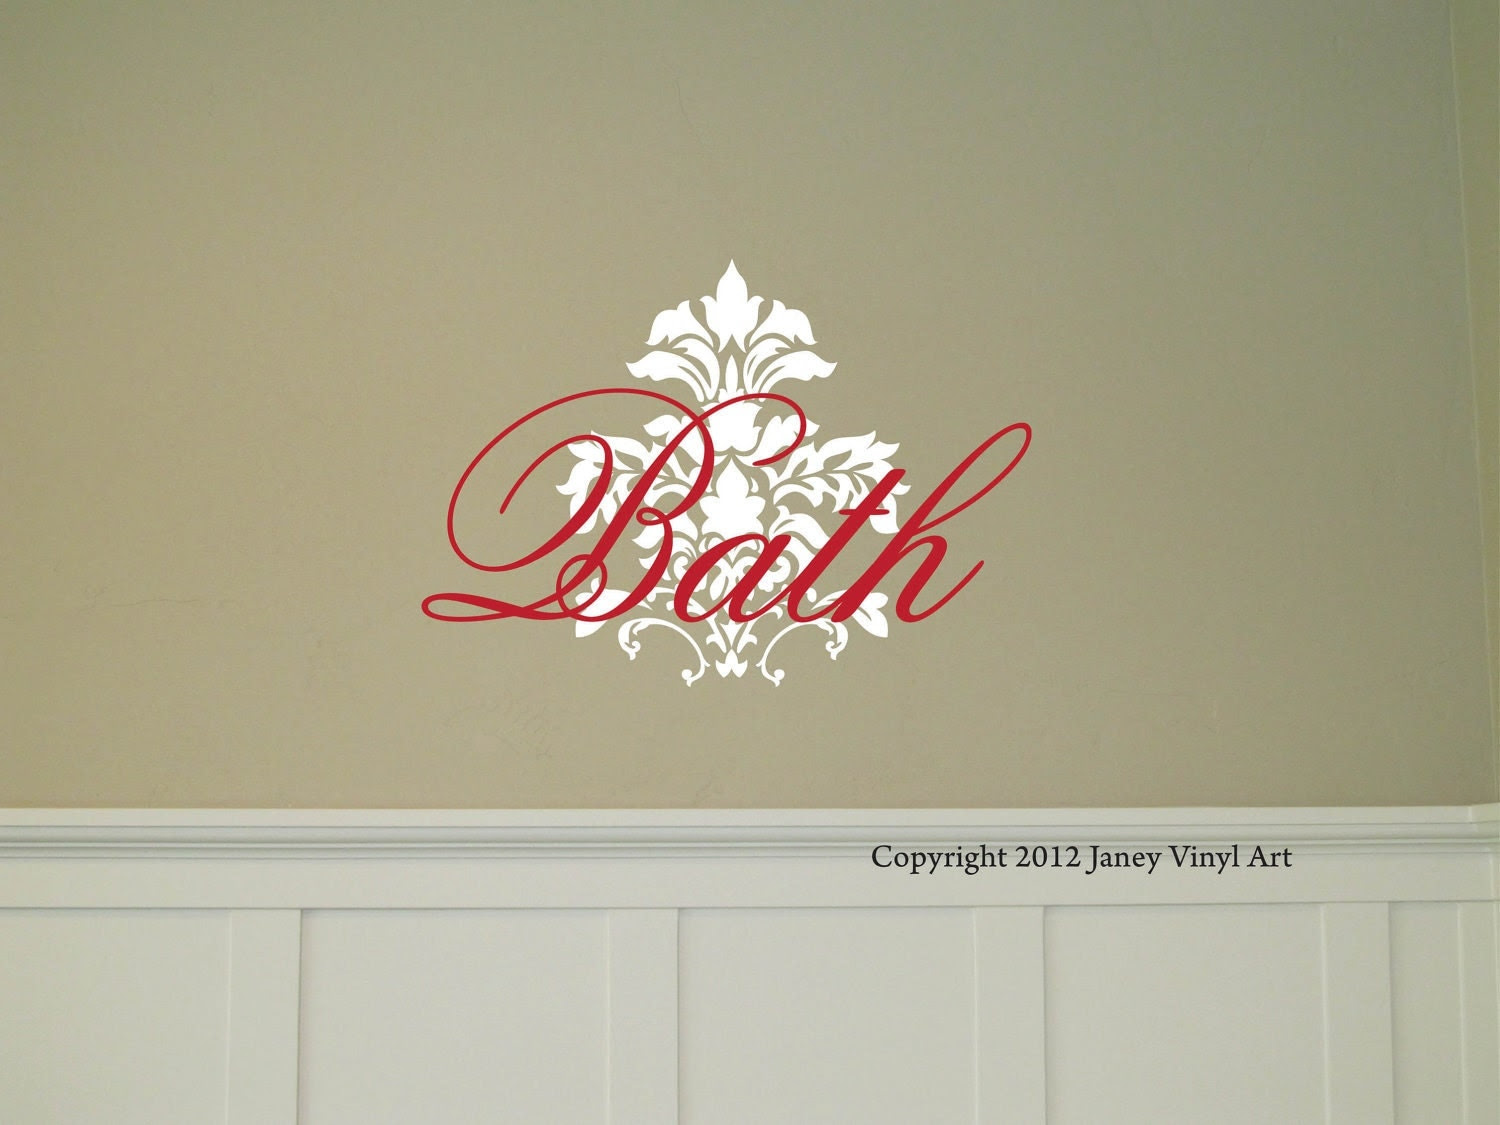 Bath Motif Bath Wall Decal Vinyl Wall Art Bath by JaneyVinylArt